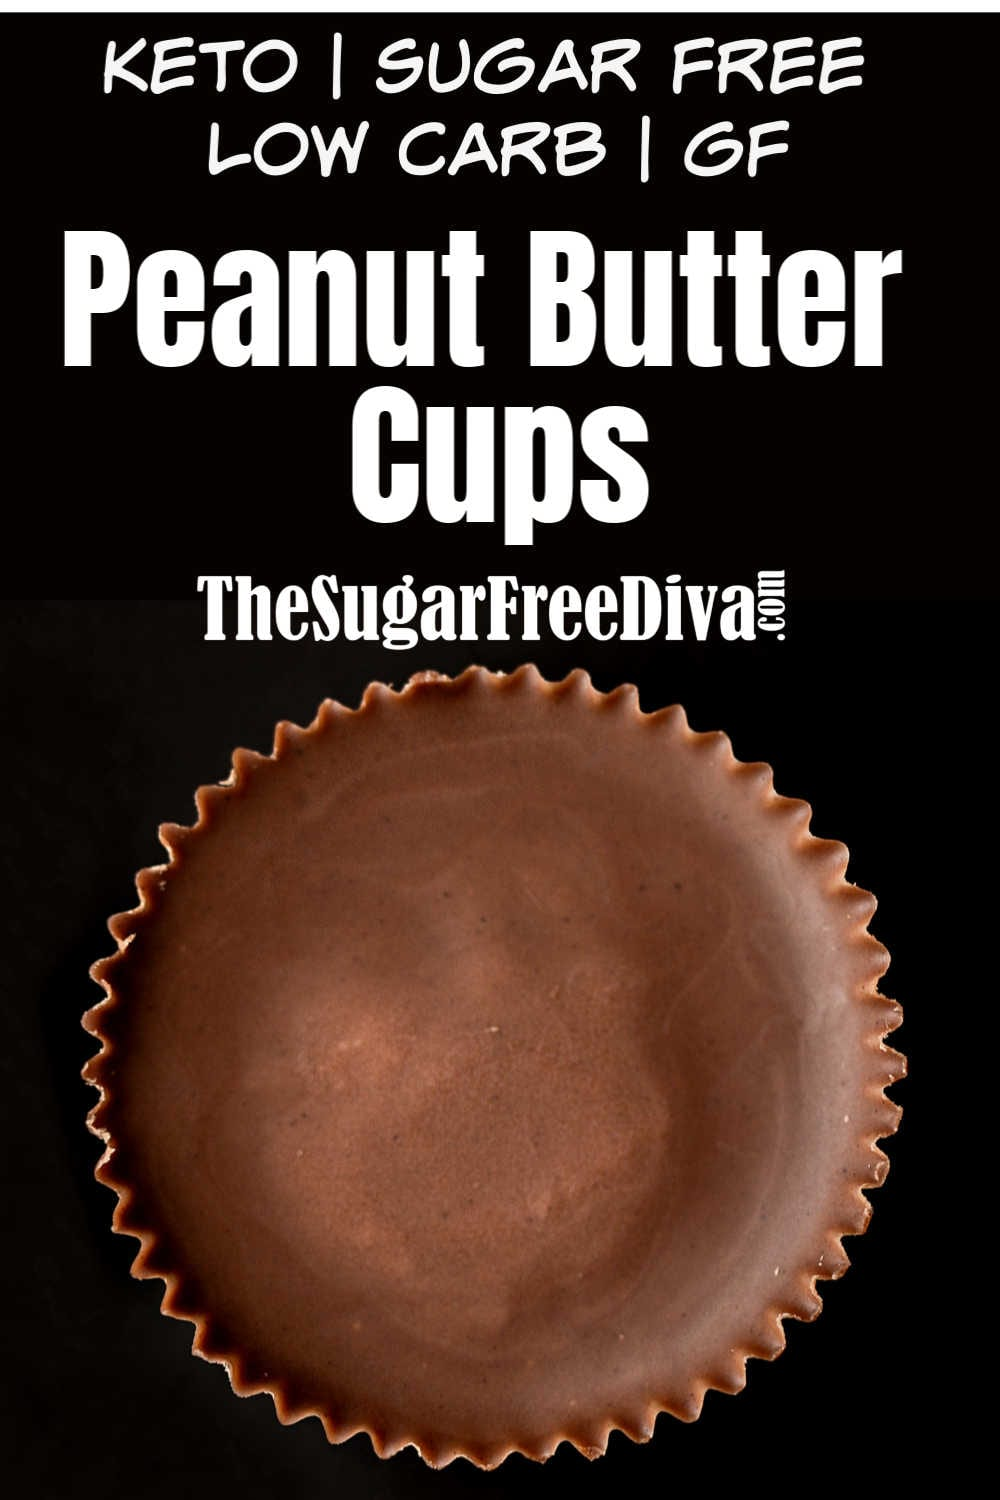 Low Carb Keto Chocolate Peanut Butter Cups